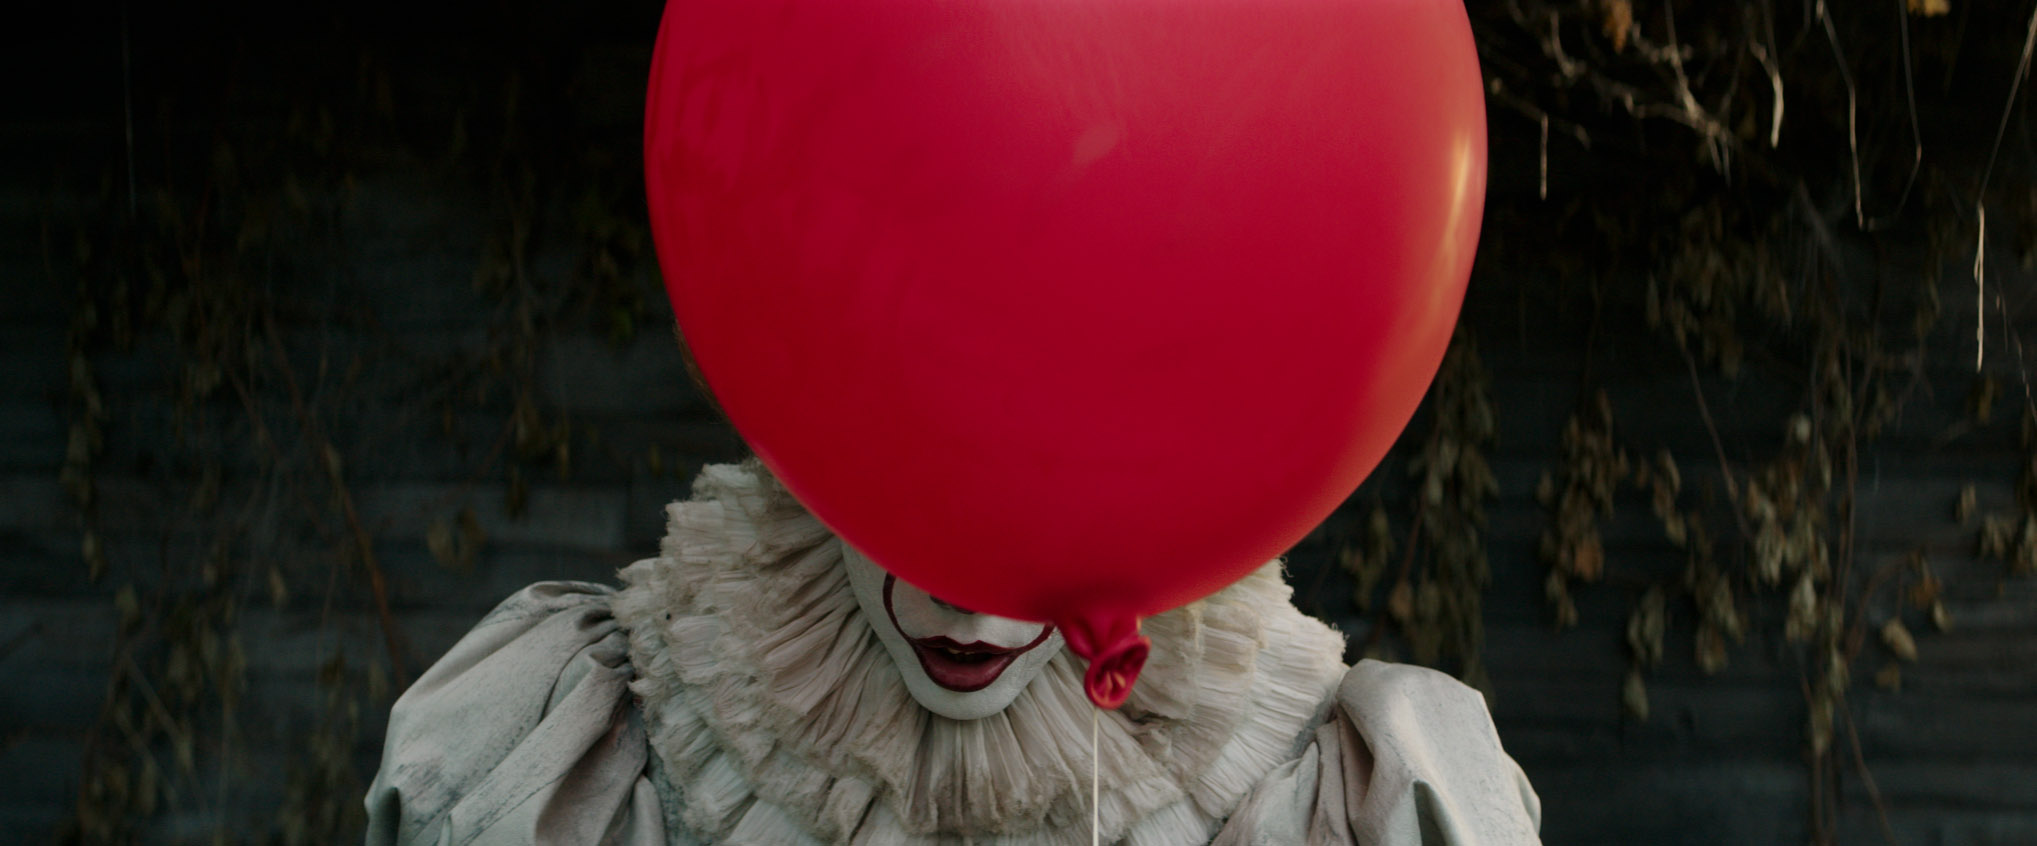 'It' Film Review: You'll Be Scared of the Clown Too